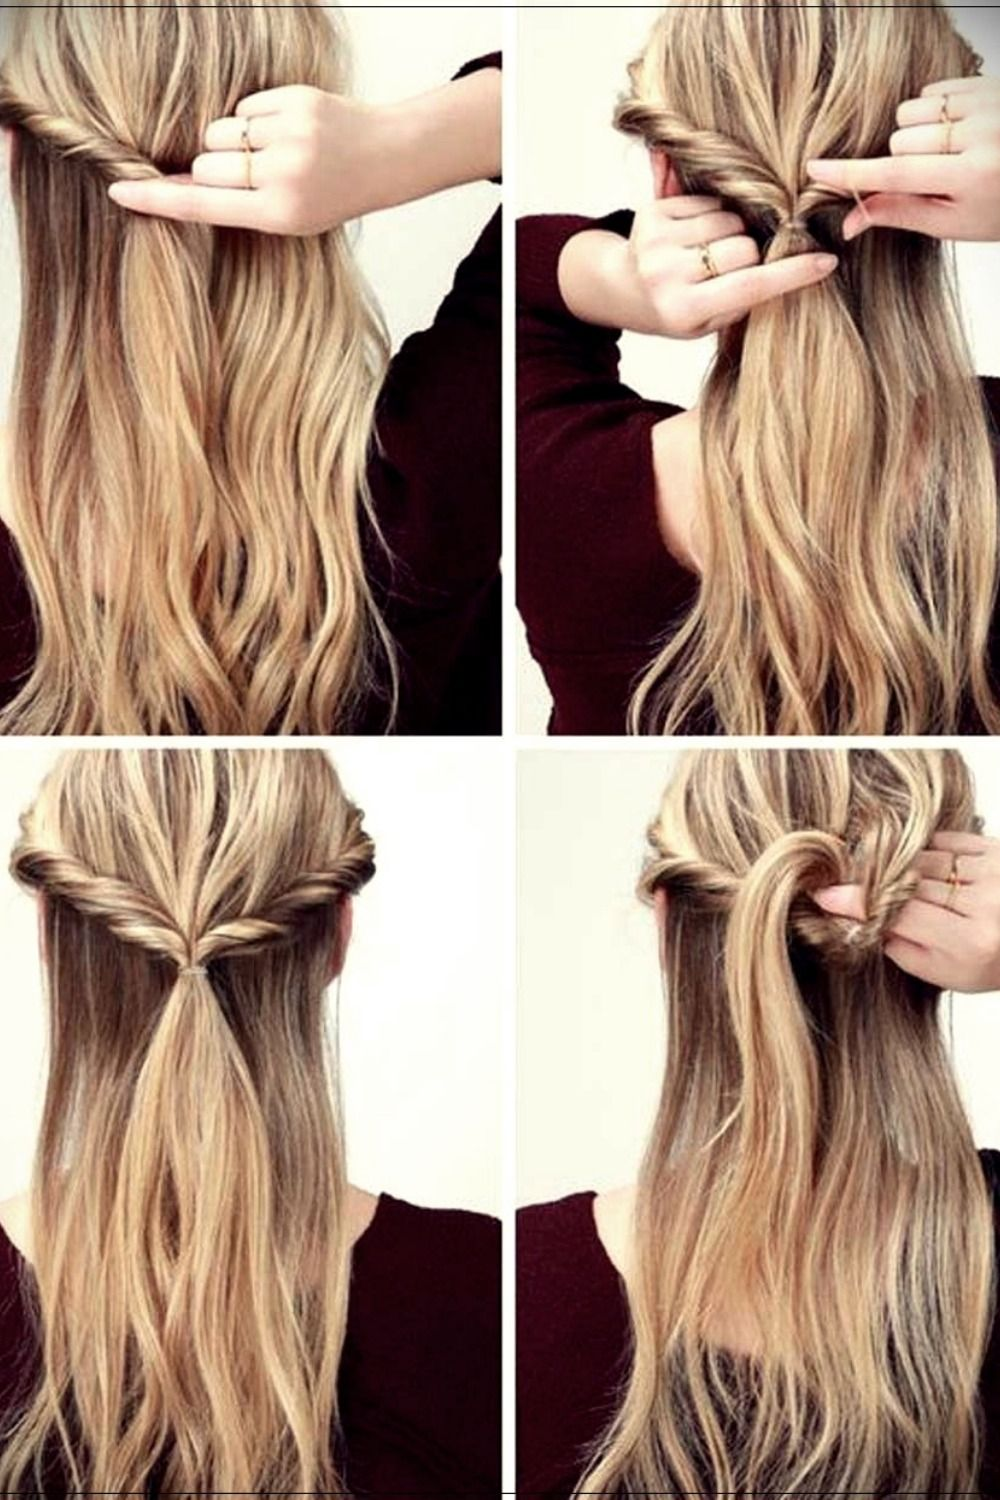 Hairstyles For Long Hair Easy Ideas And Fast Long Hair Styles Braids For Long Hair Thick Hair Styles